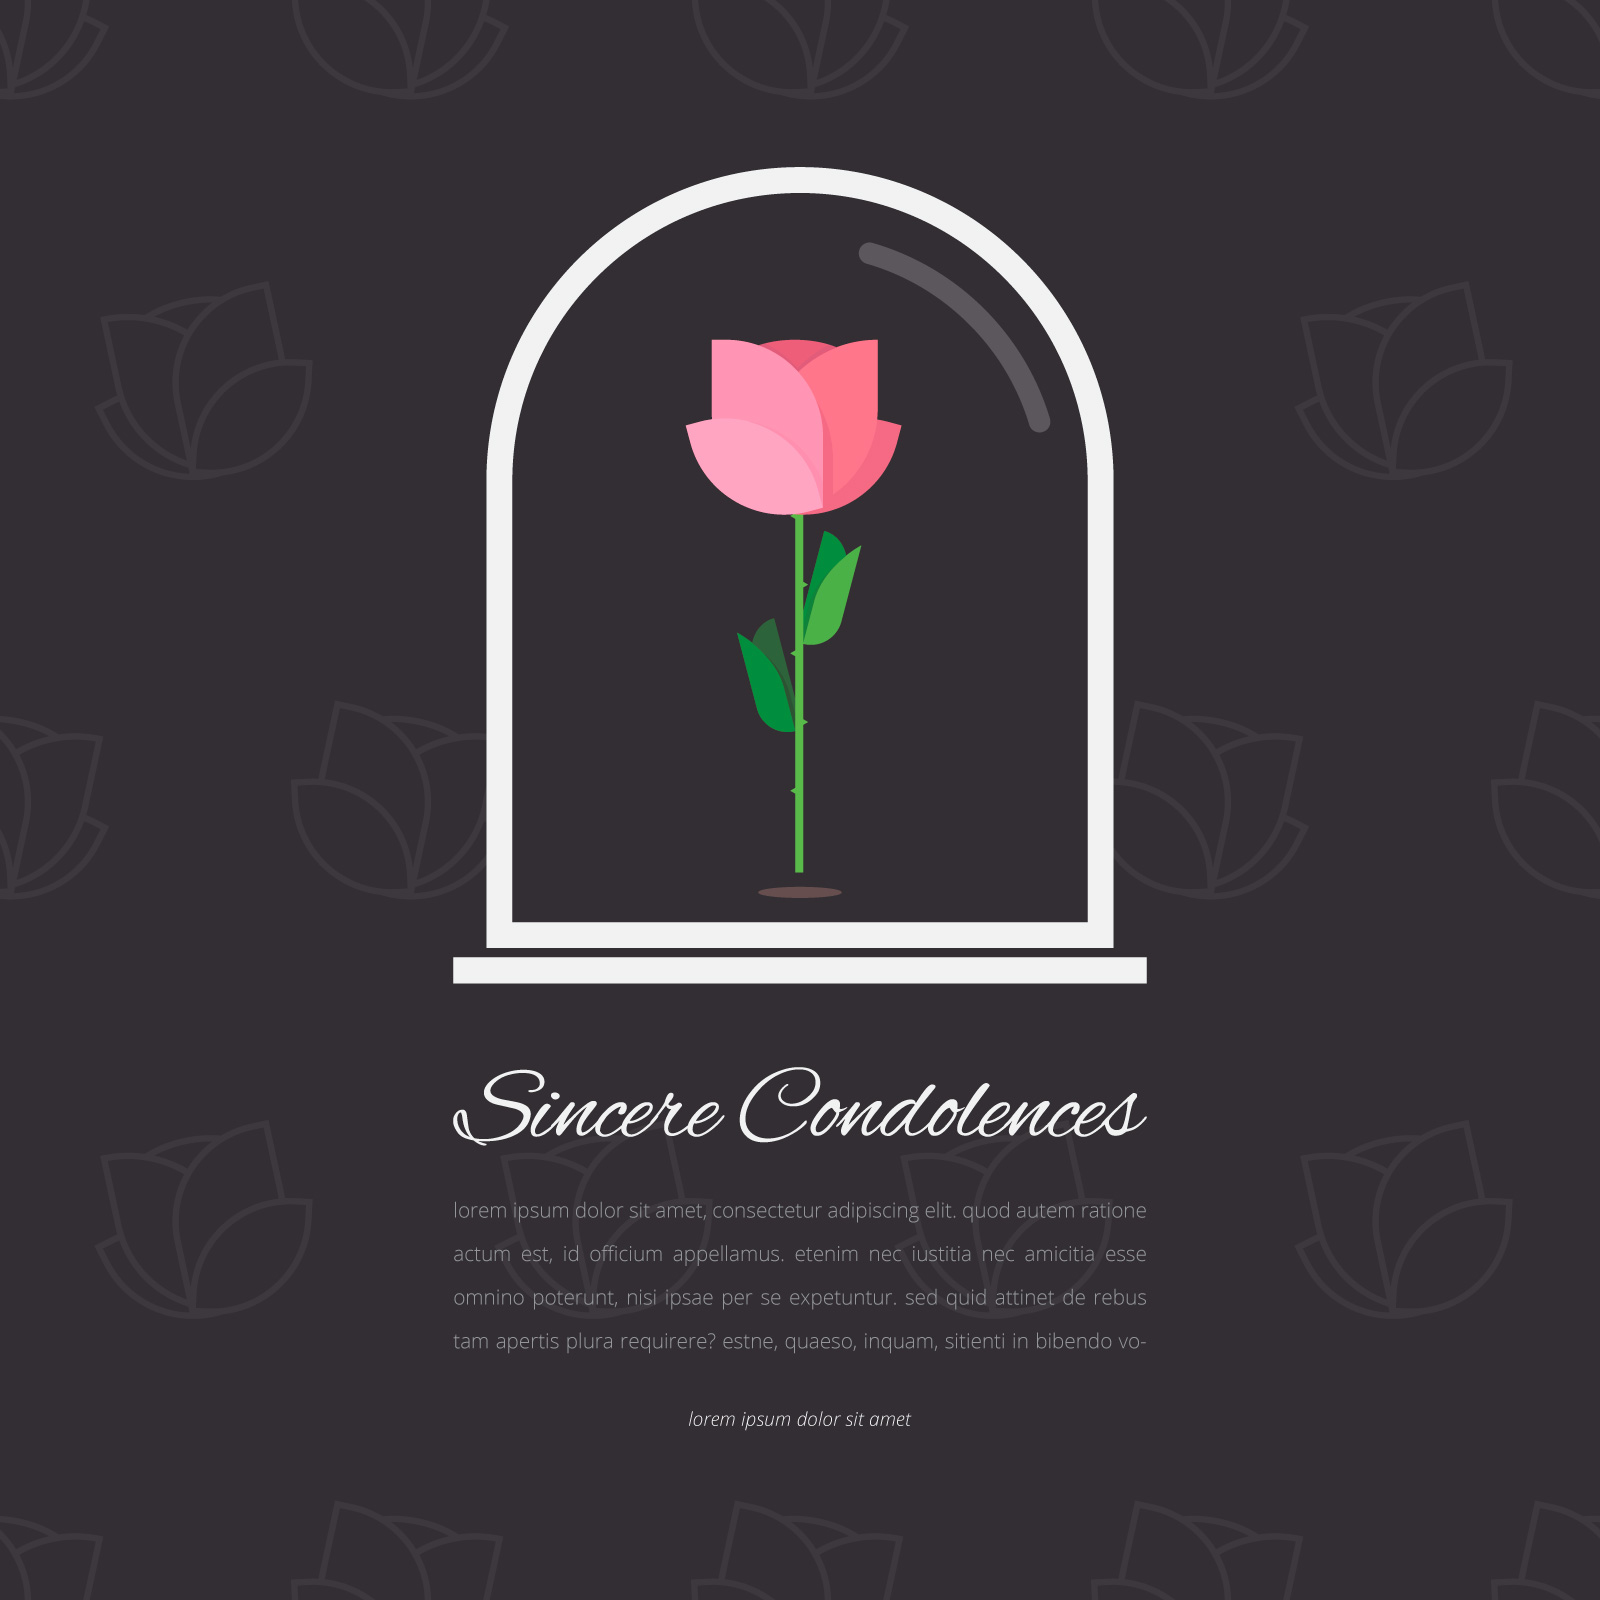 Condolence free vector art 998 free downloads elegant funeral card with rose in glass editable template greetings illustration kristyandbryce Images